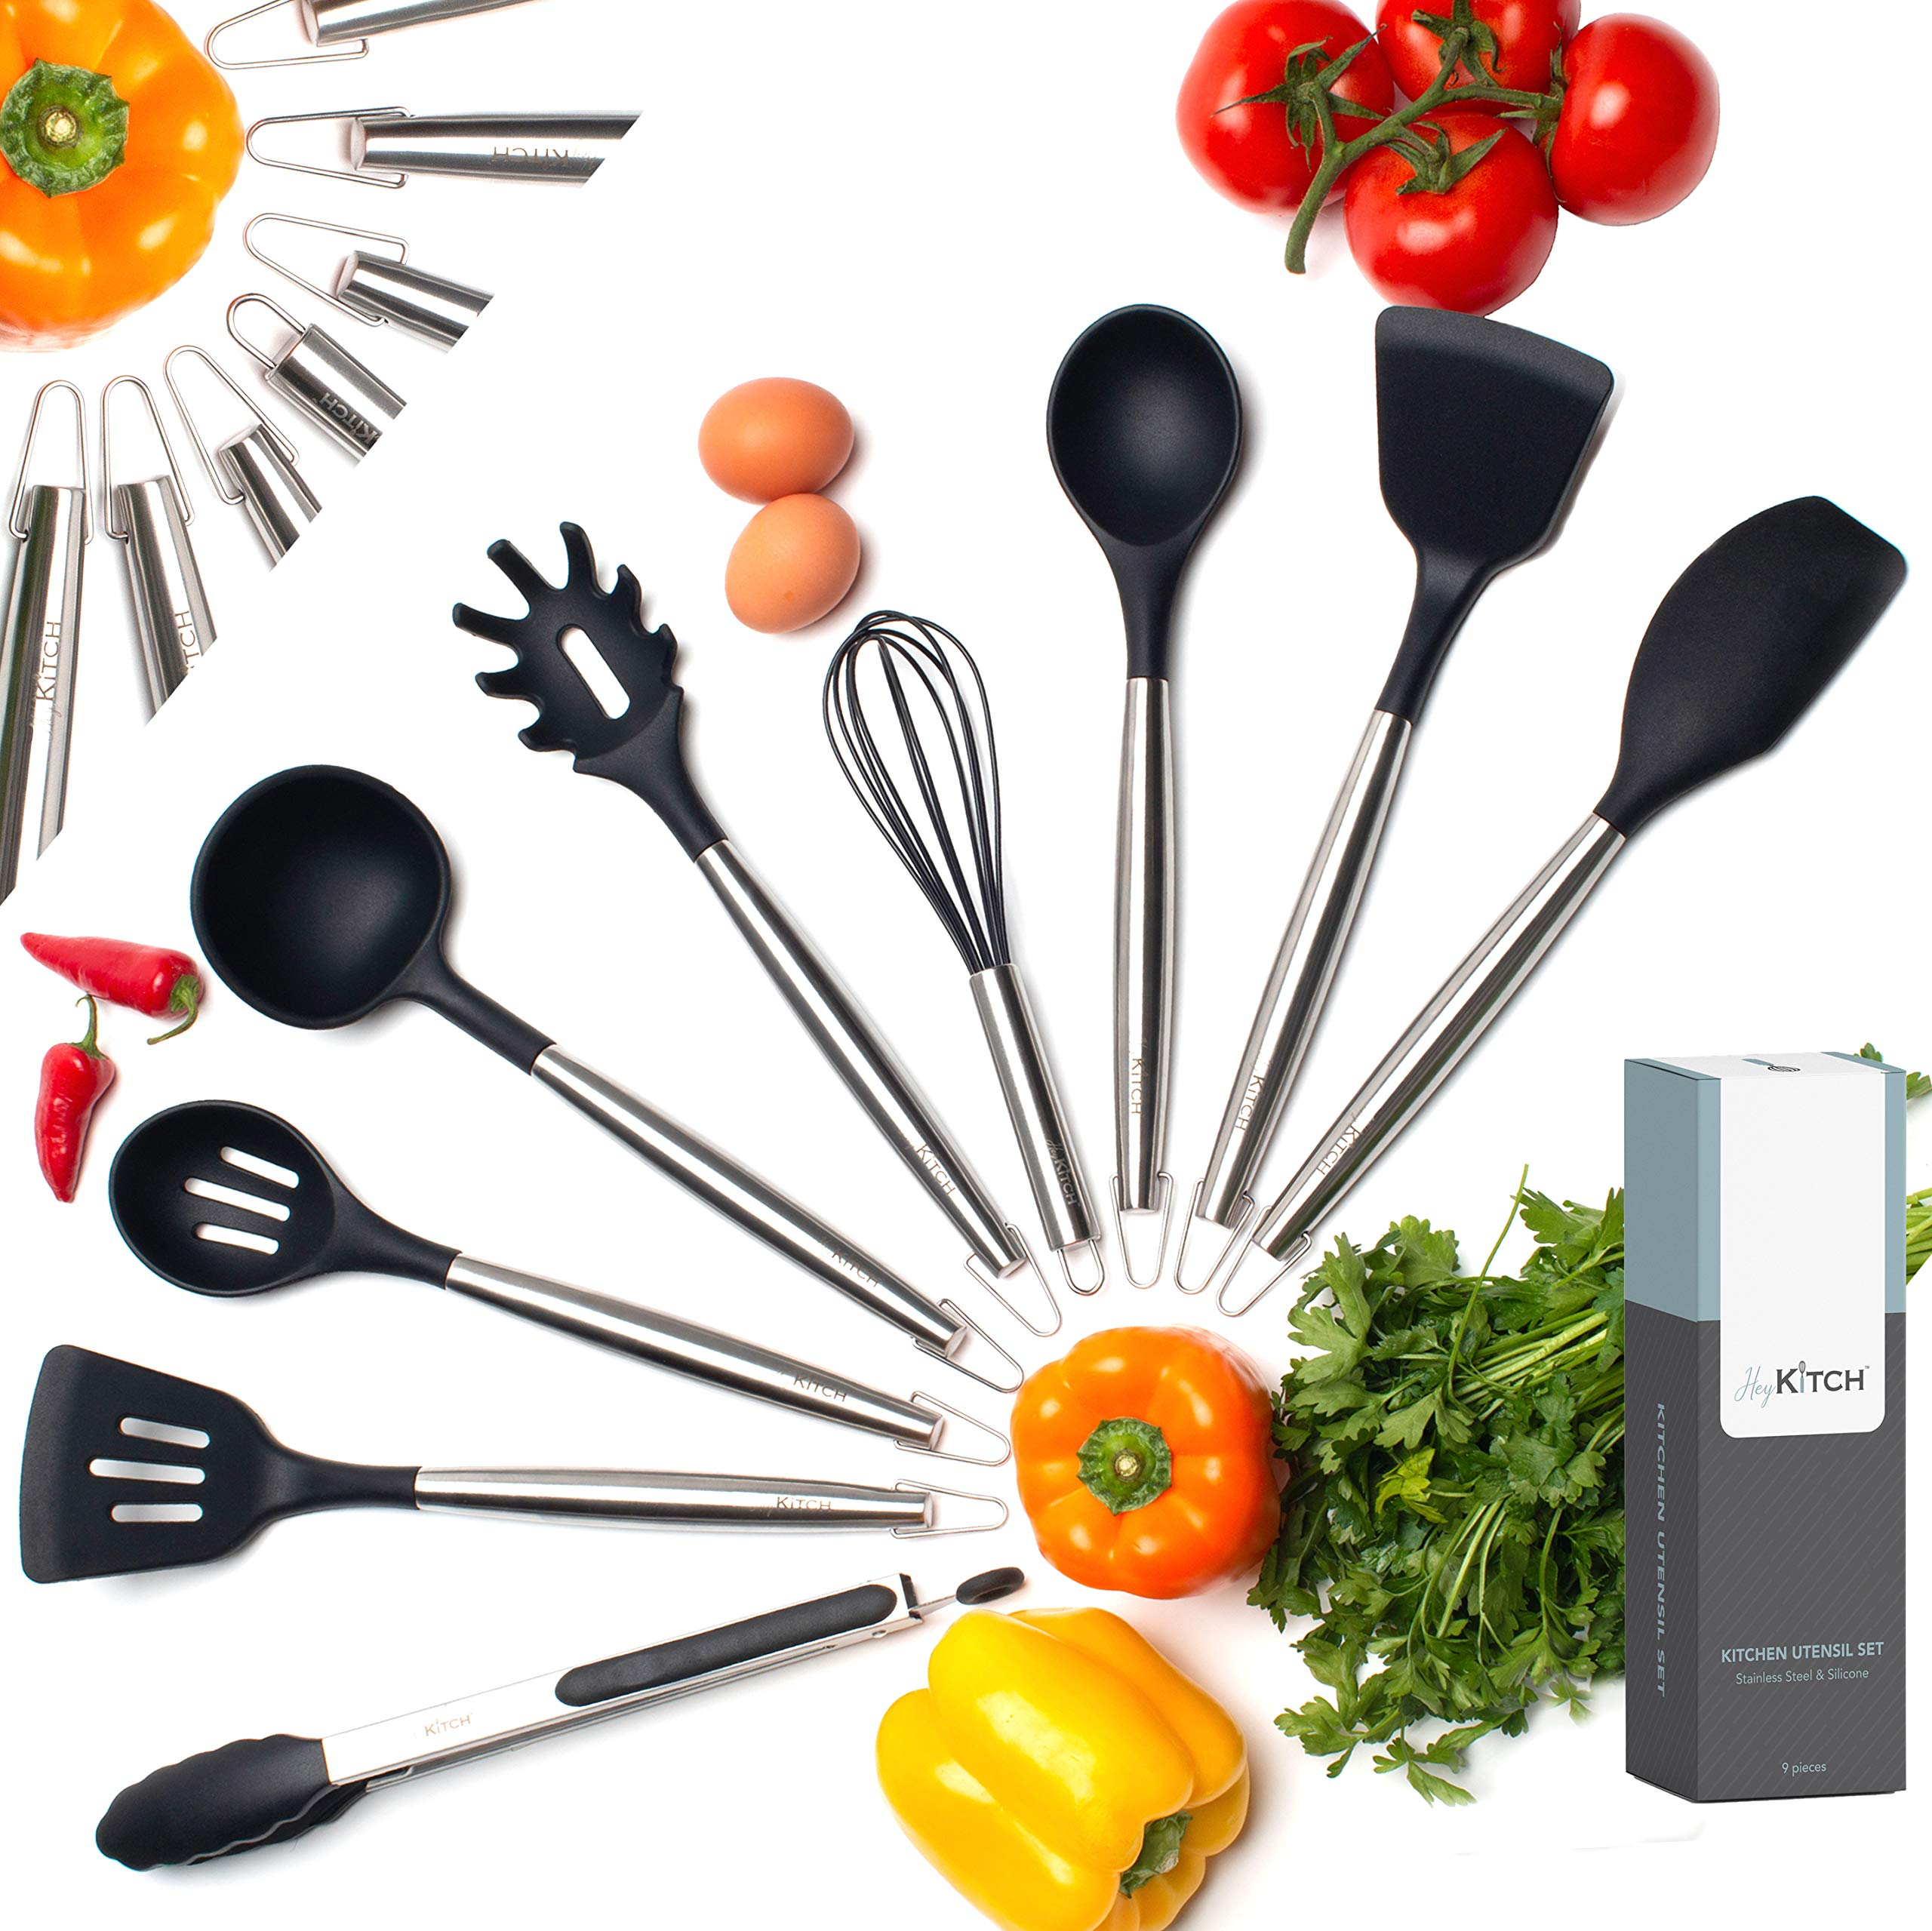 HeyKITCH Kitchen Utensil Set - 9 Piece Black Utensil Set - Stainless Steel & Silicone Utensil Set - Non Scratch & Heat Resistant Spatulas, Cooking Spoons, Whisk, Tongs - Kitchen Tools and Gadgets by HeyKITCH